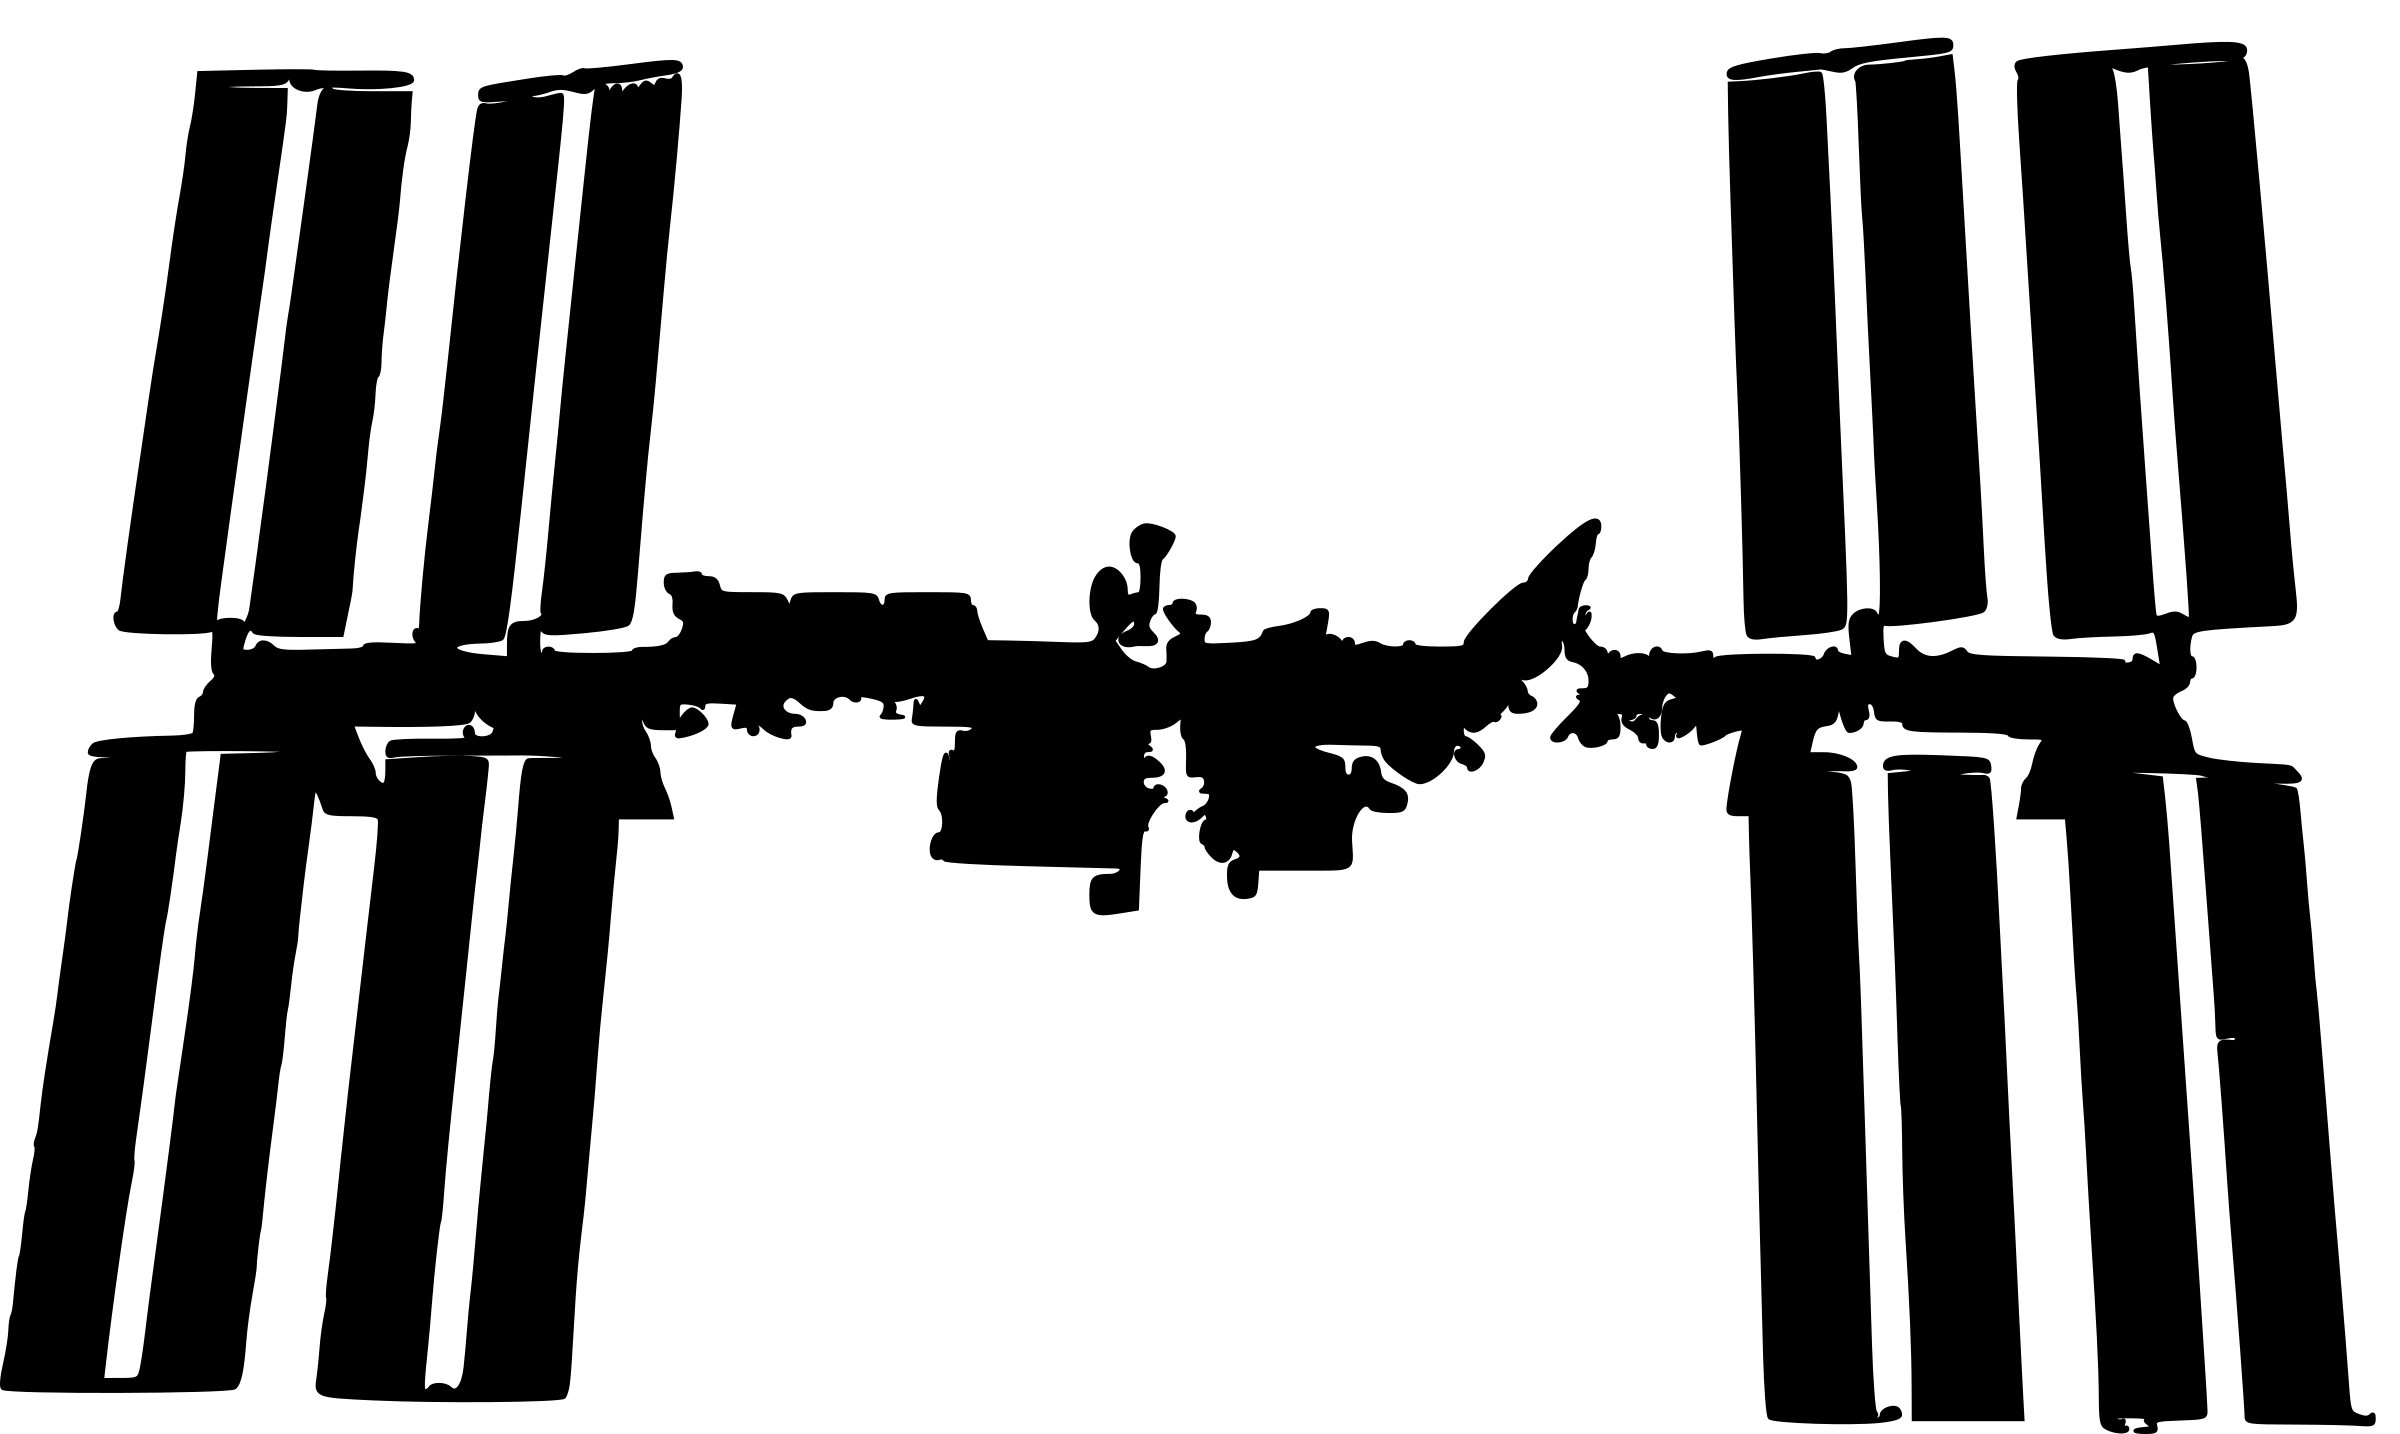 Iss PNG - 70185